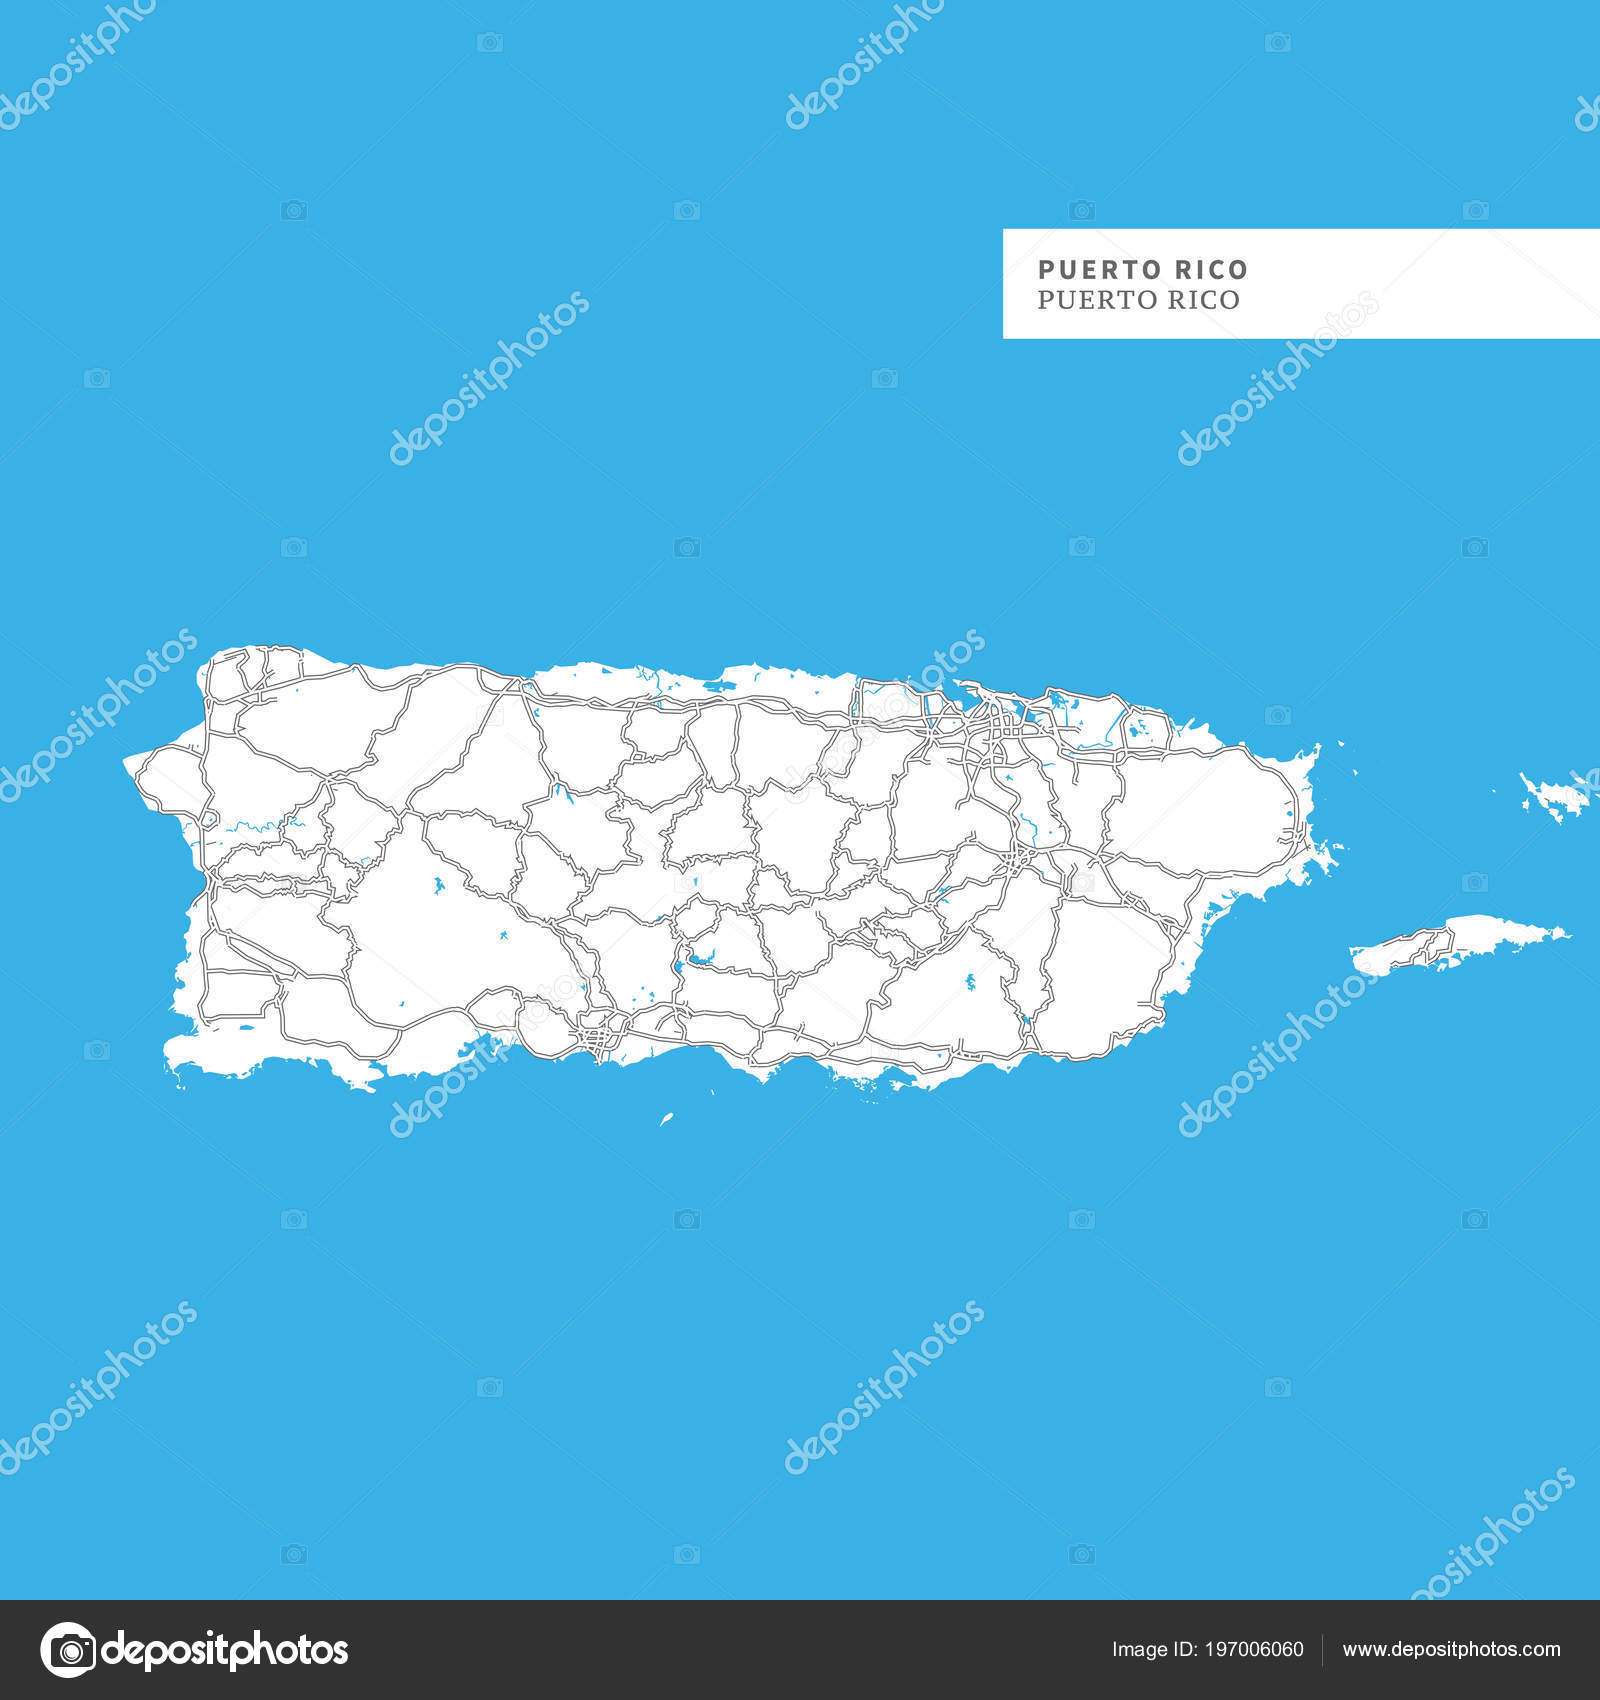 Map Puerto Rico Island Puerto Rico Contains Geography Outlines Land ...